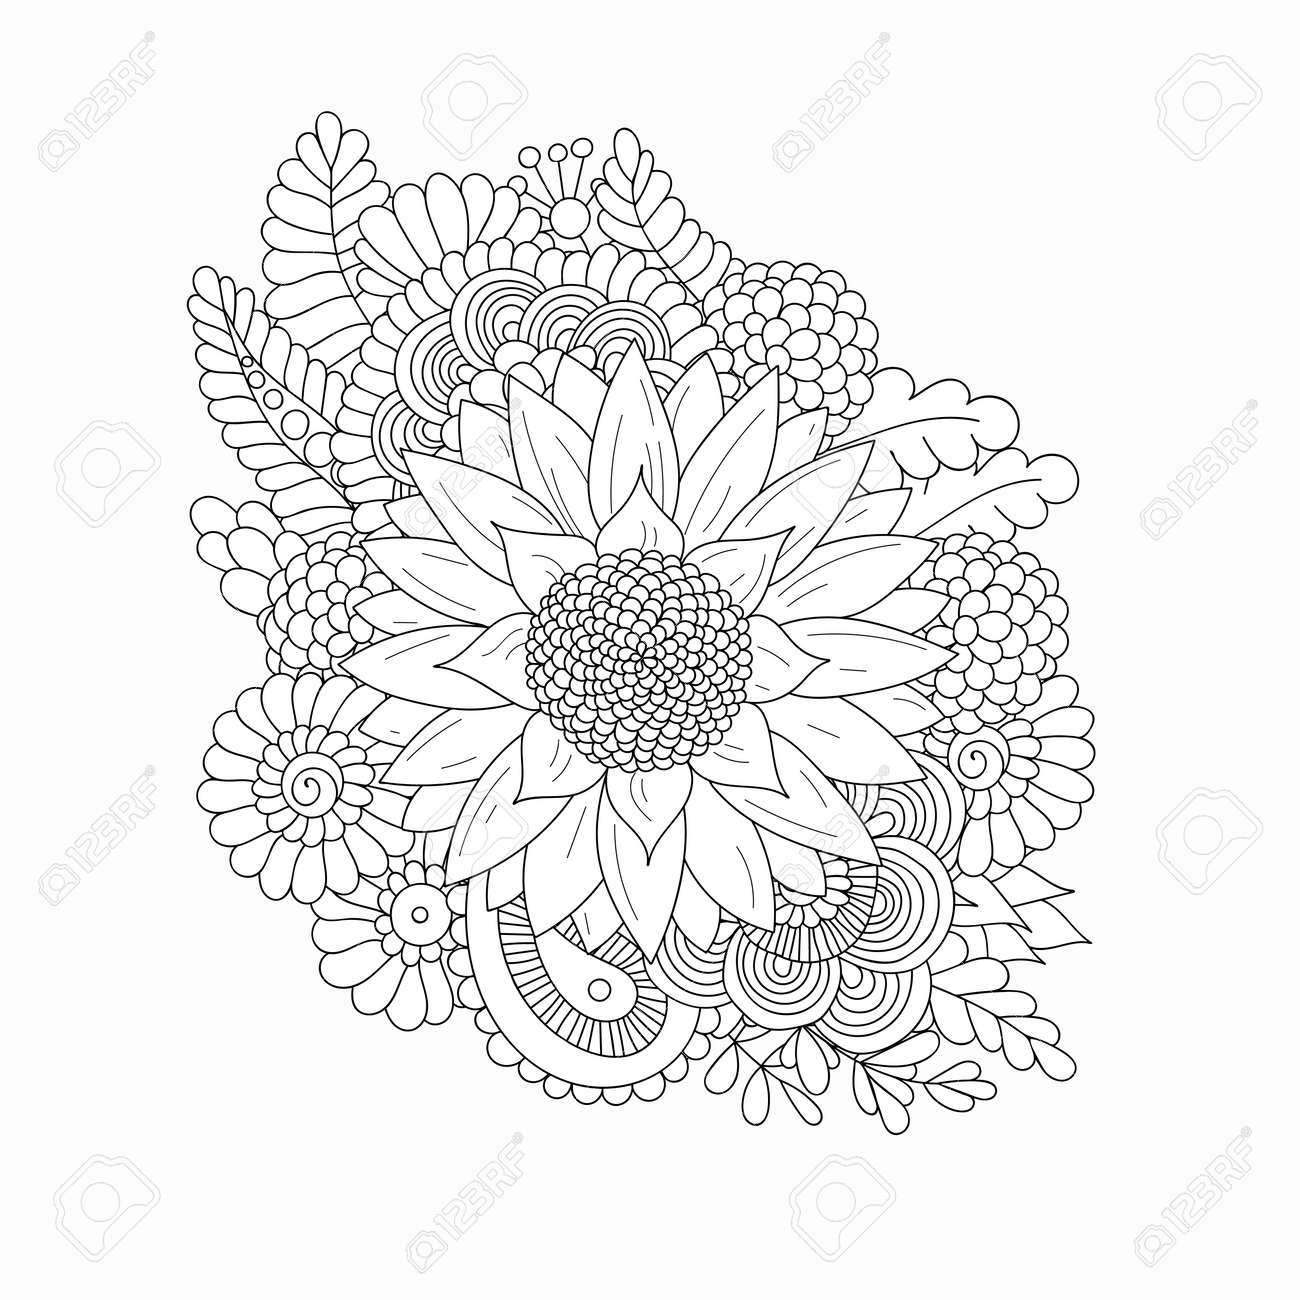 Sunflower Isolated On White Background. Black And White Doodle ...